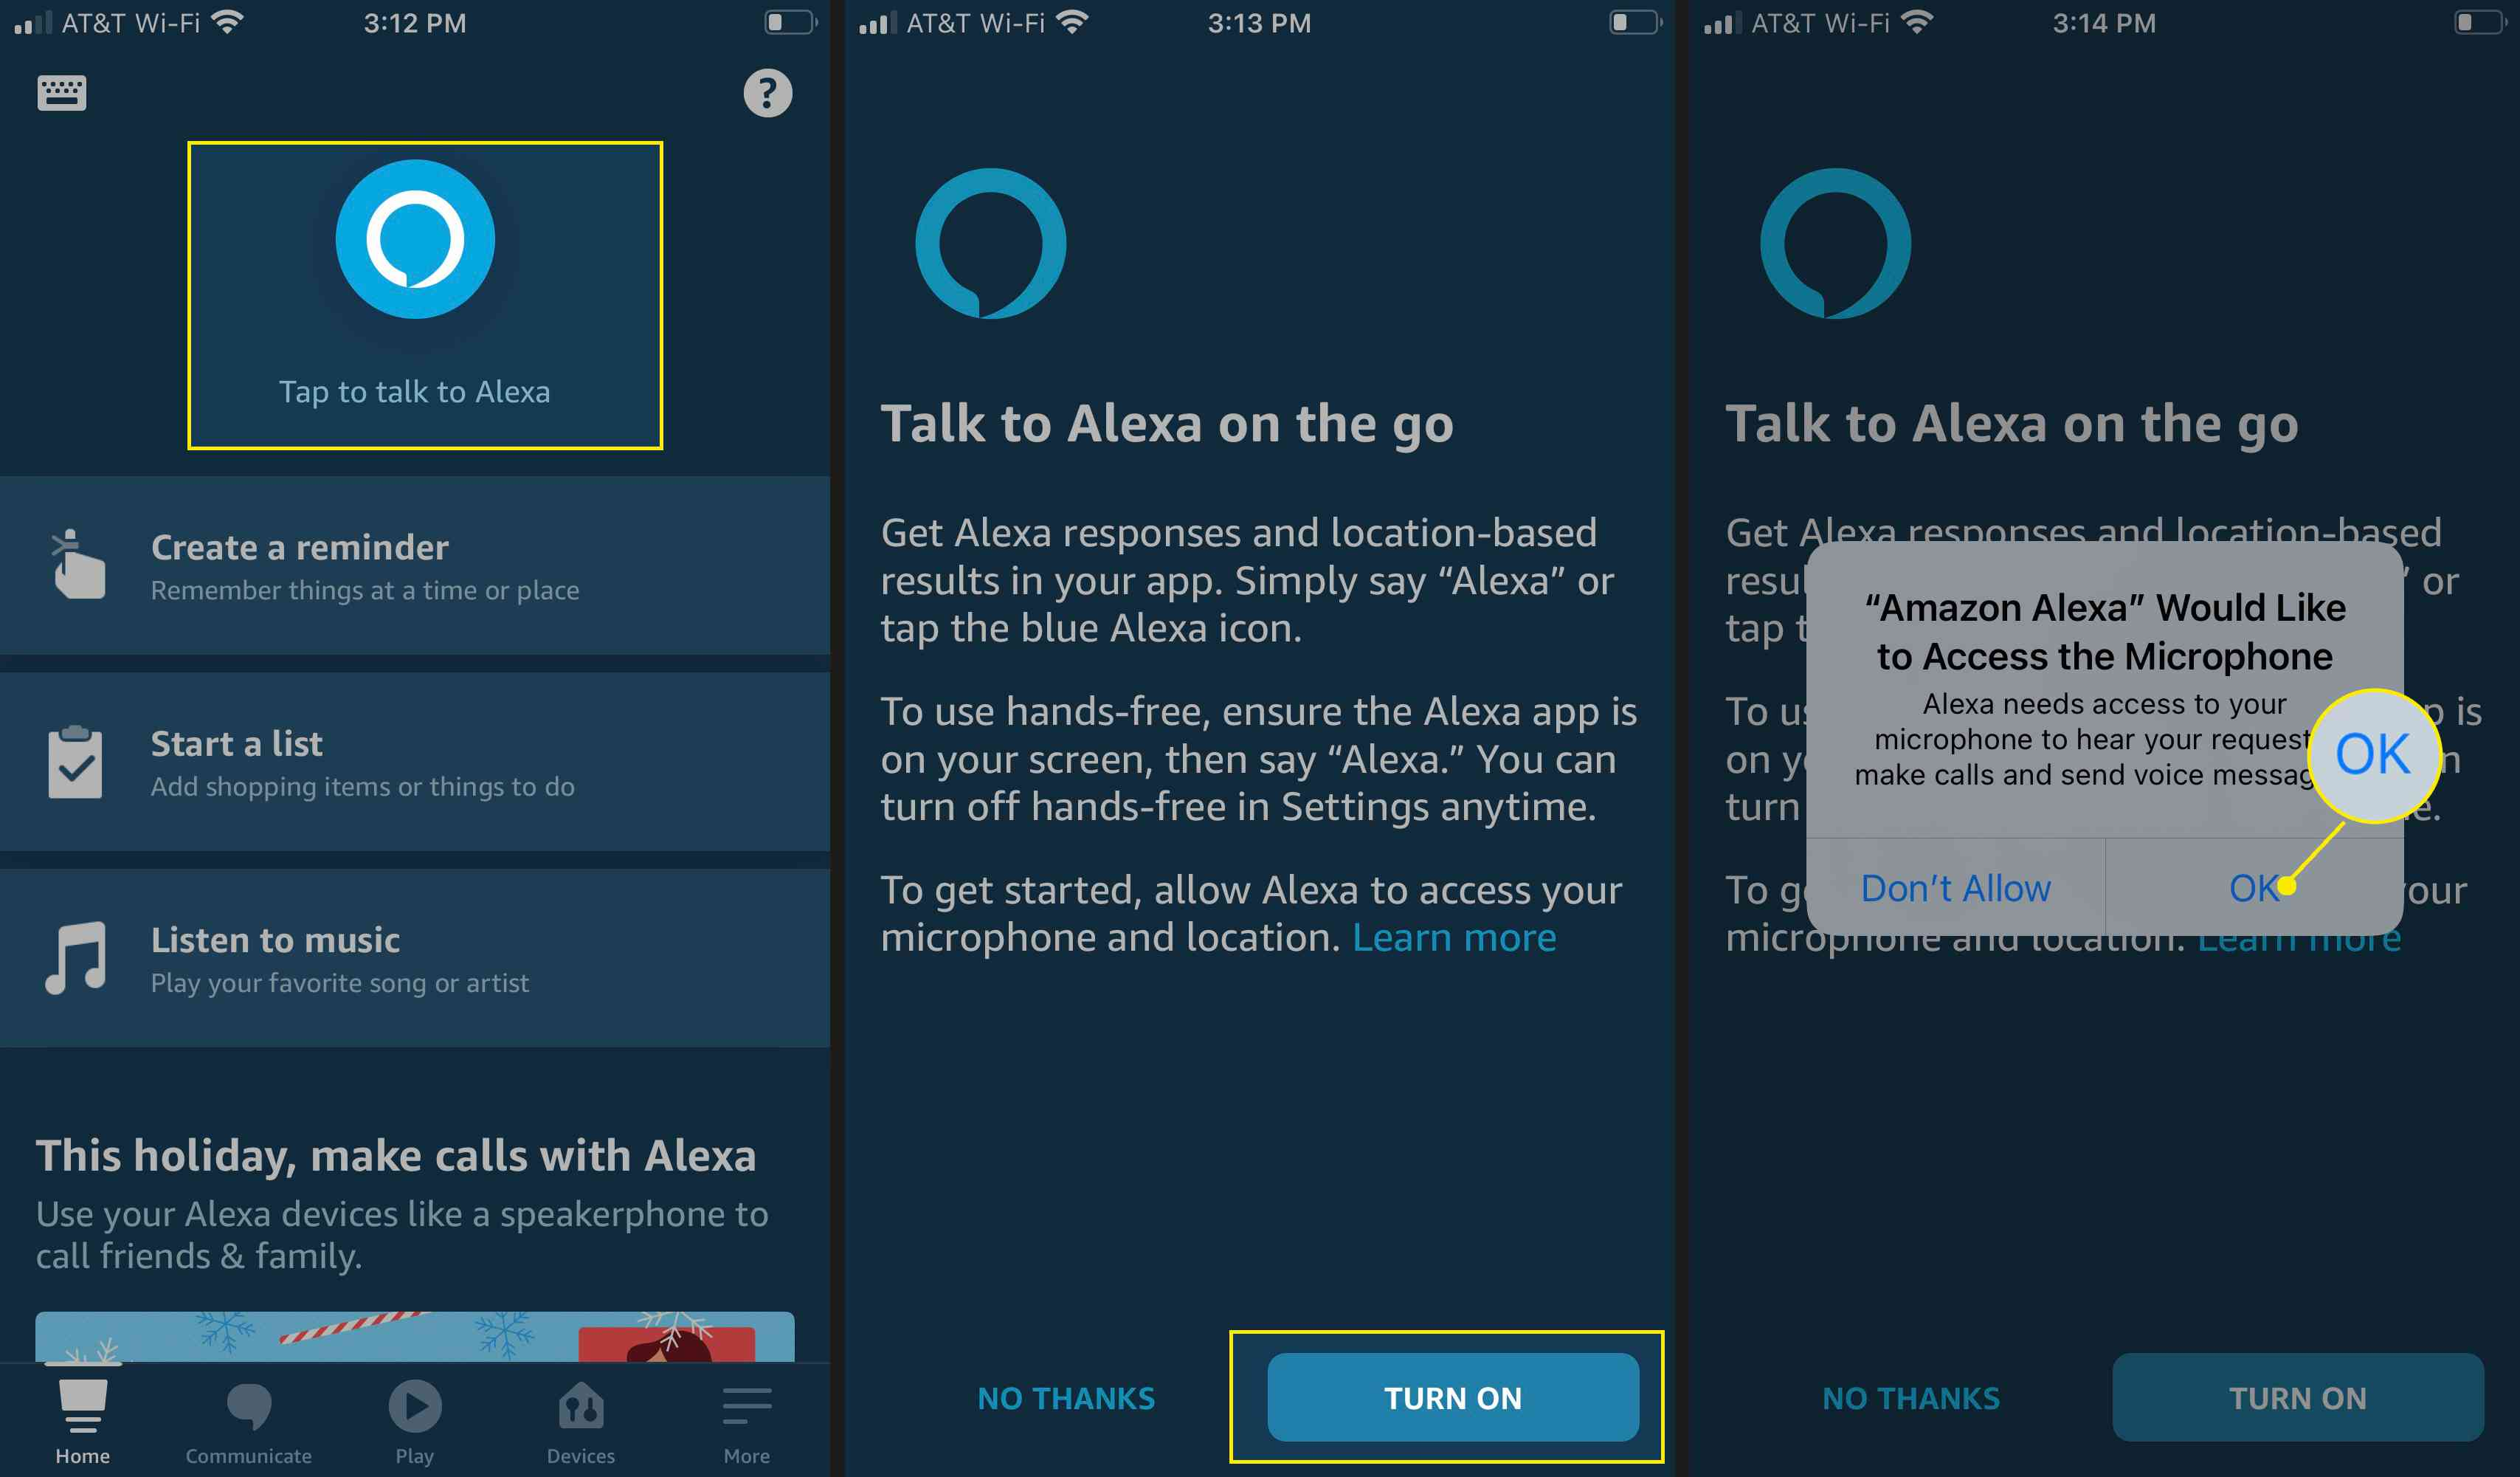 Tap to talk to Alexa, then turn on mobile and microphone access.